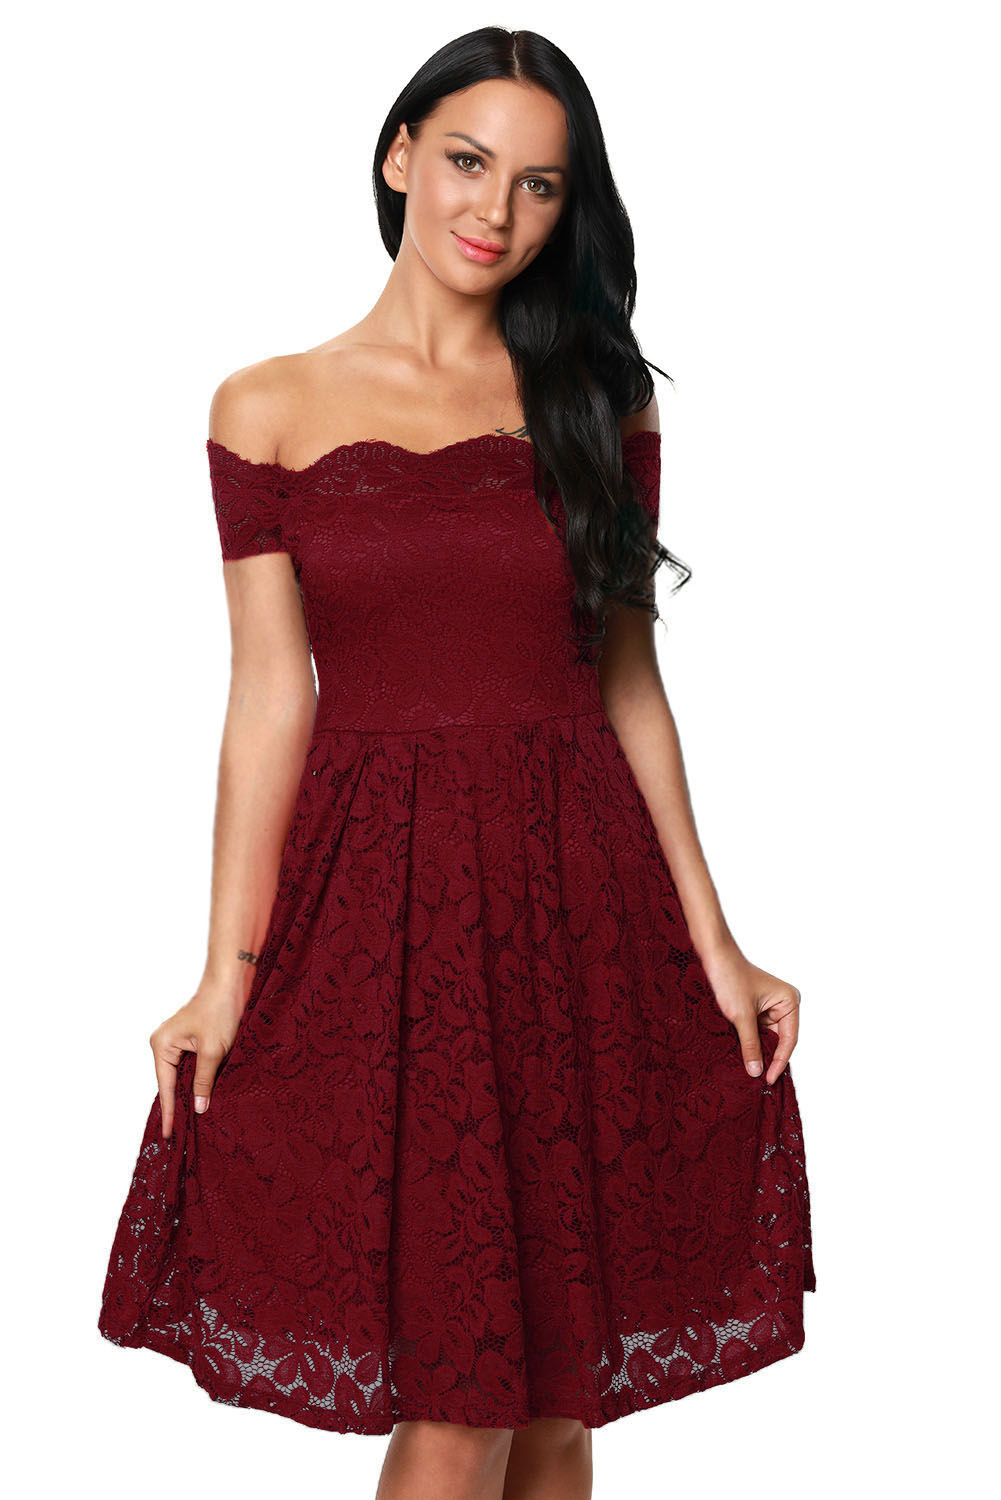 Wine Scalloped Off Shoulder Flared Lace Dress - STYLESIMO.com